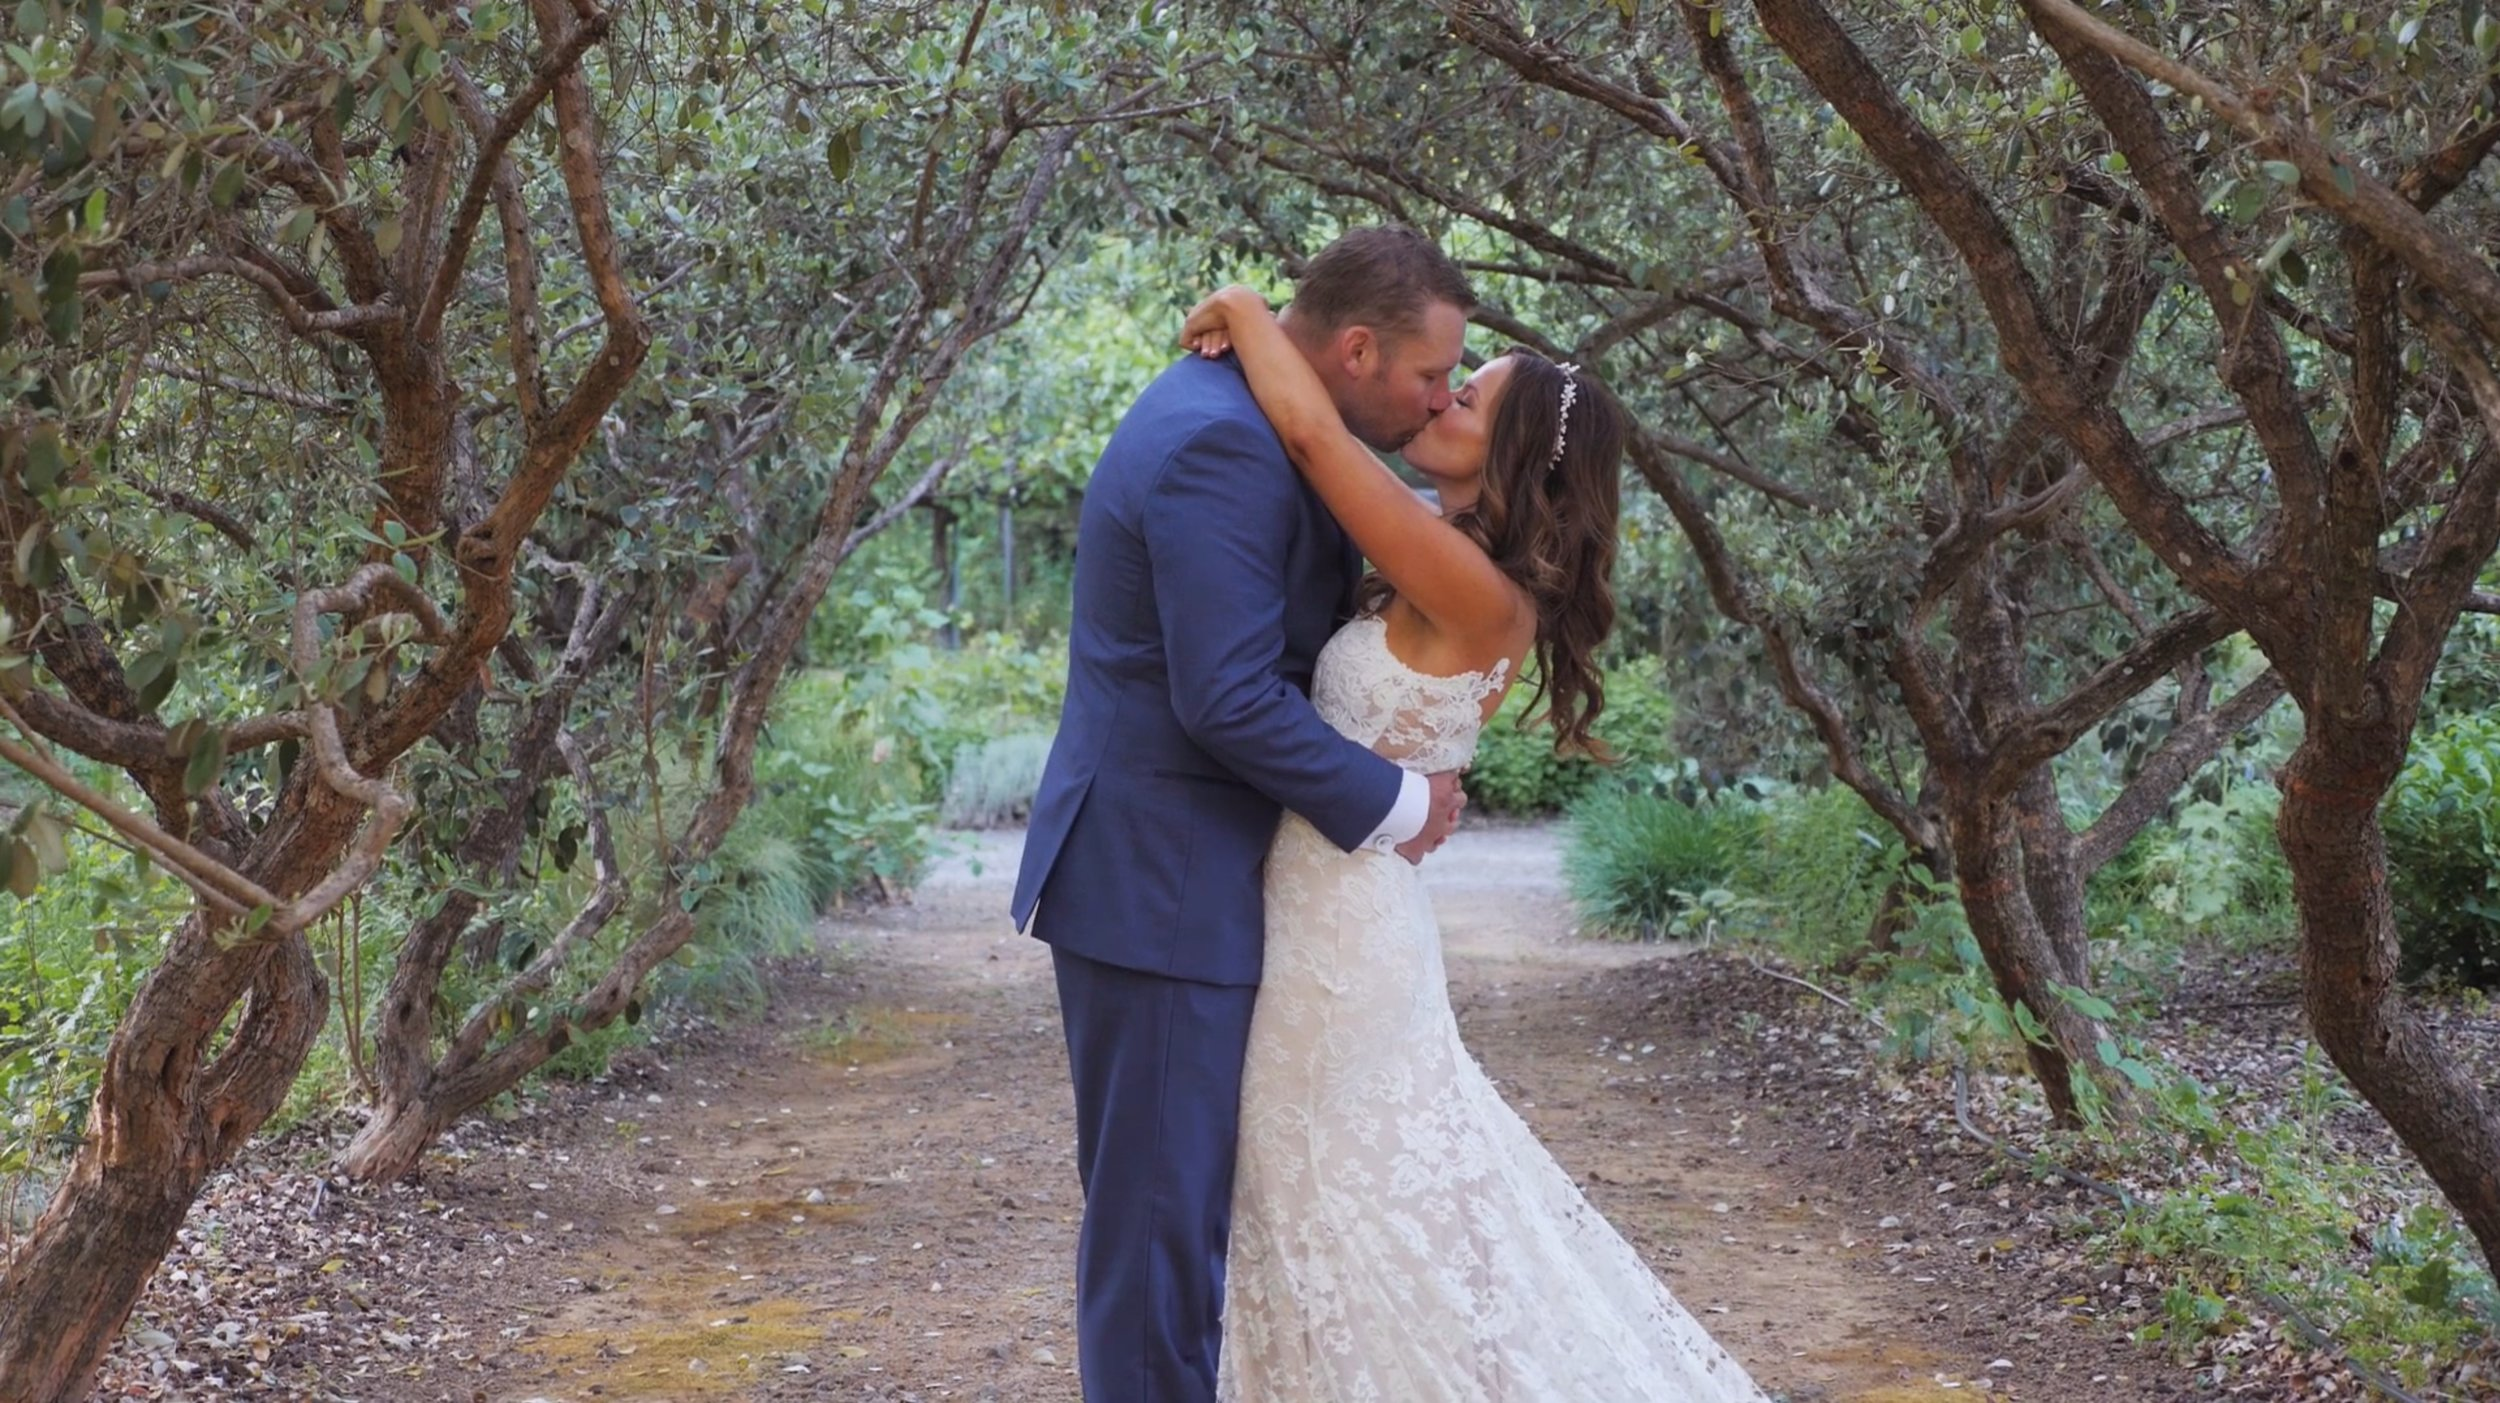 Groom kissing his bride on a natural trail between gnarled trees.